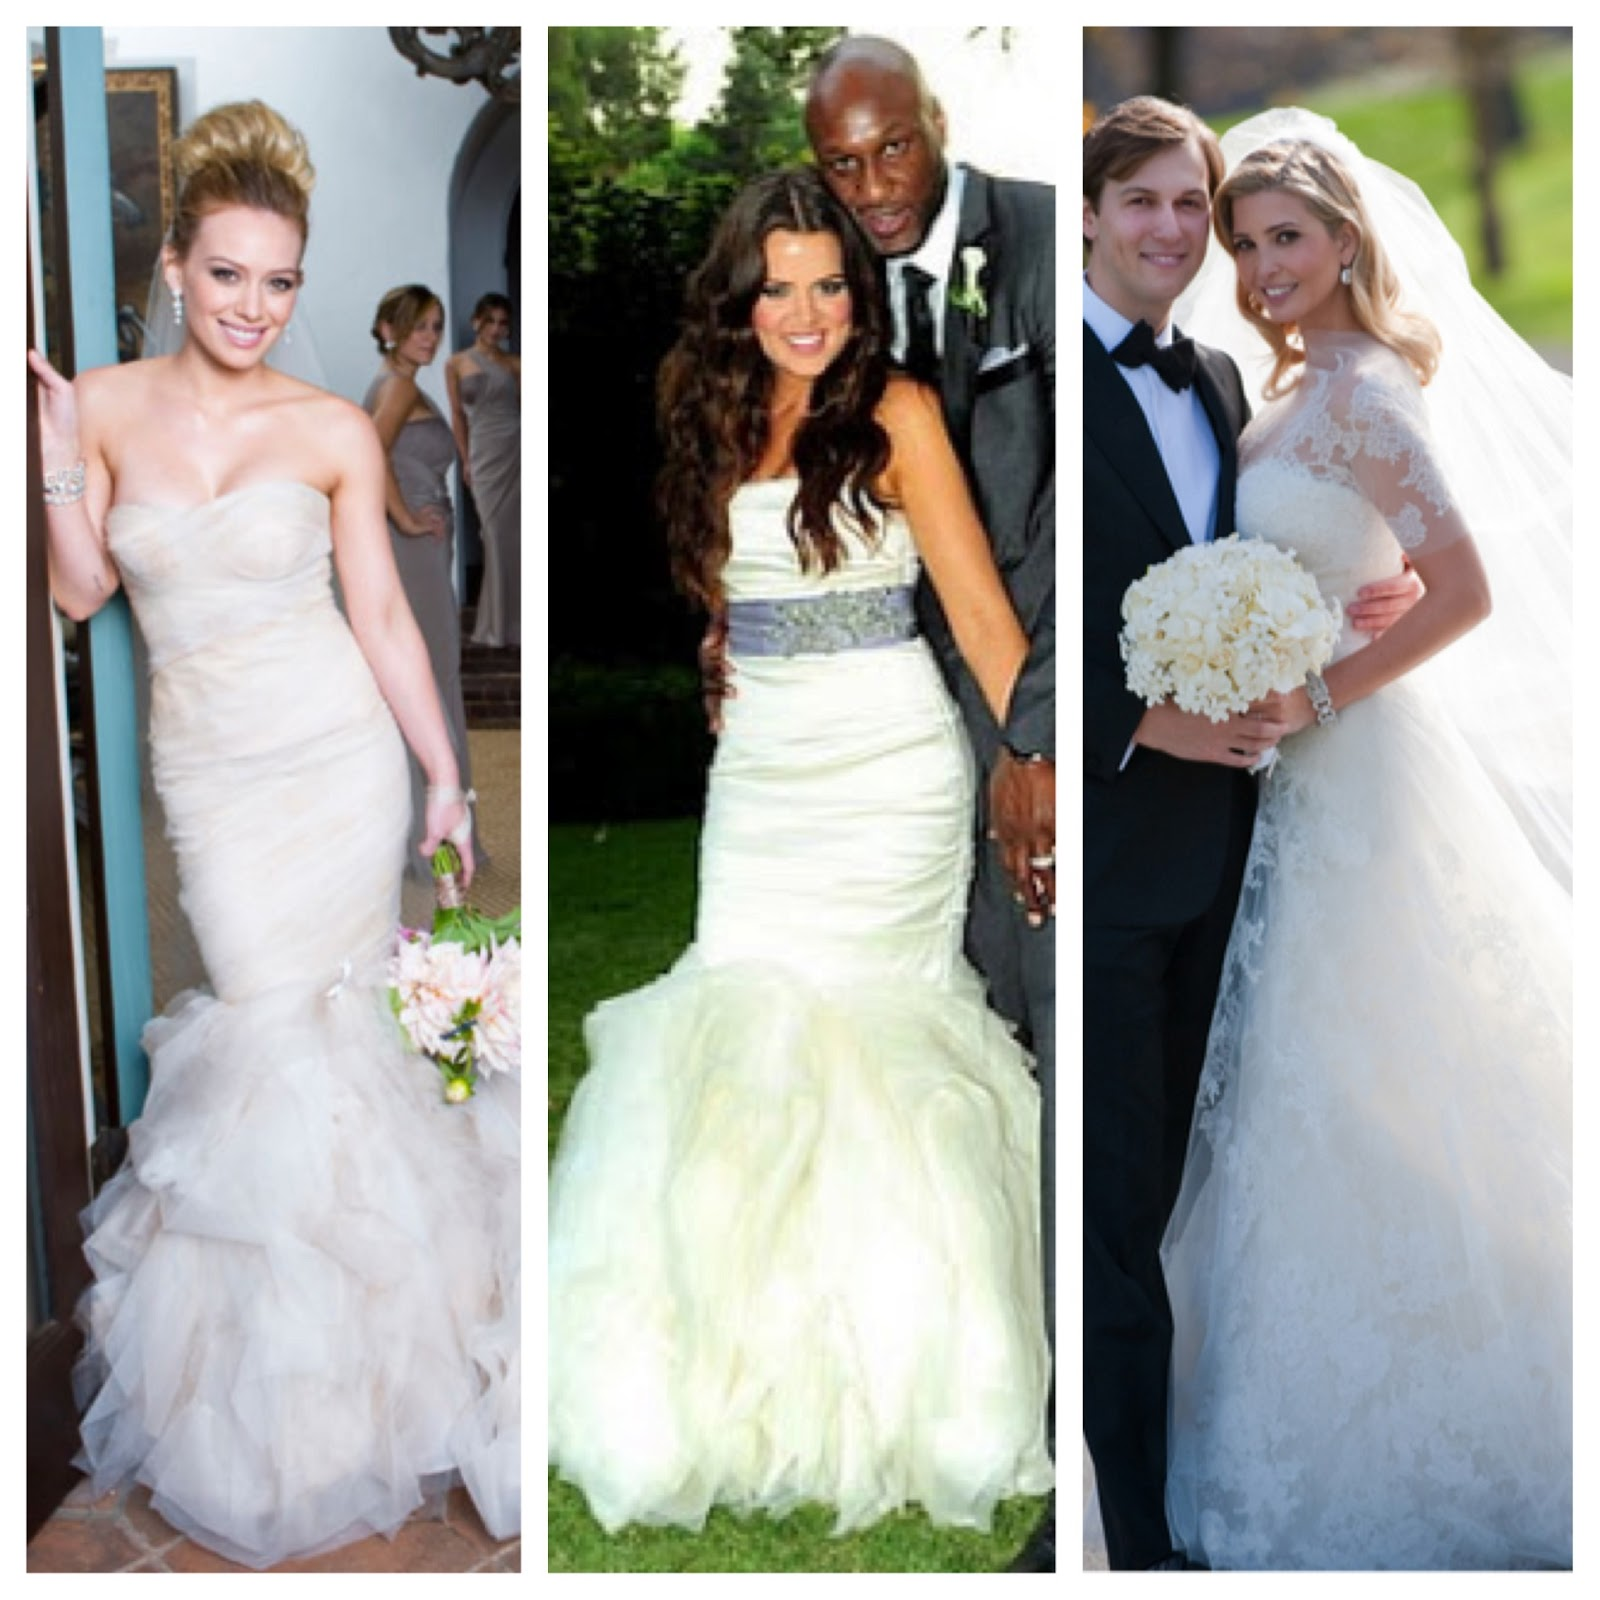 Khloe Kardashian Wedding Dress: The Woman Wearing It: Wedding Belles